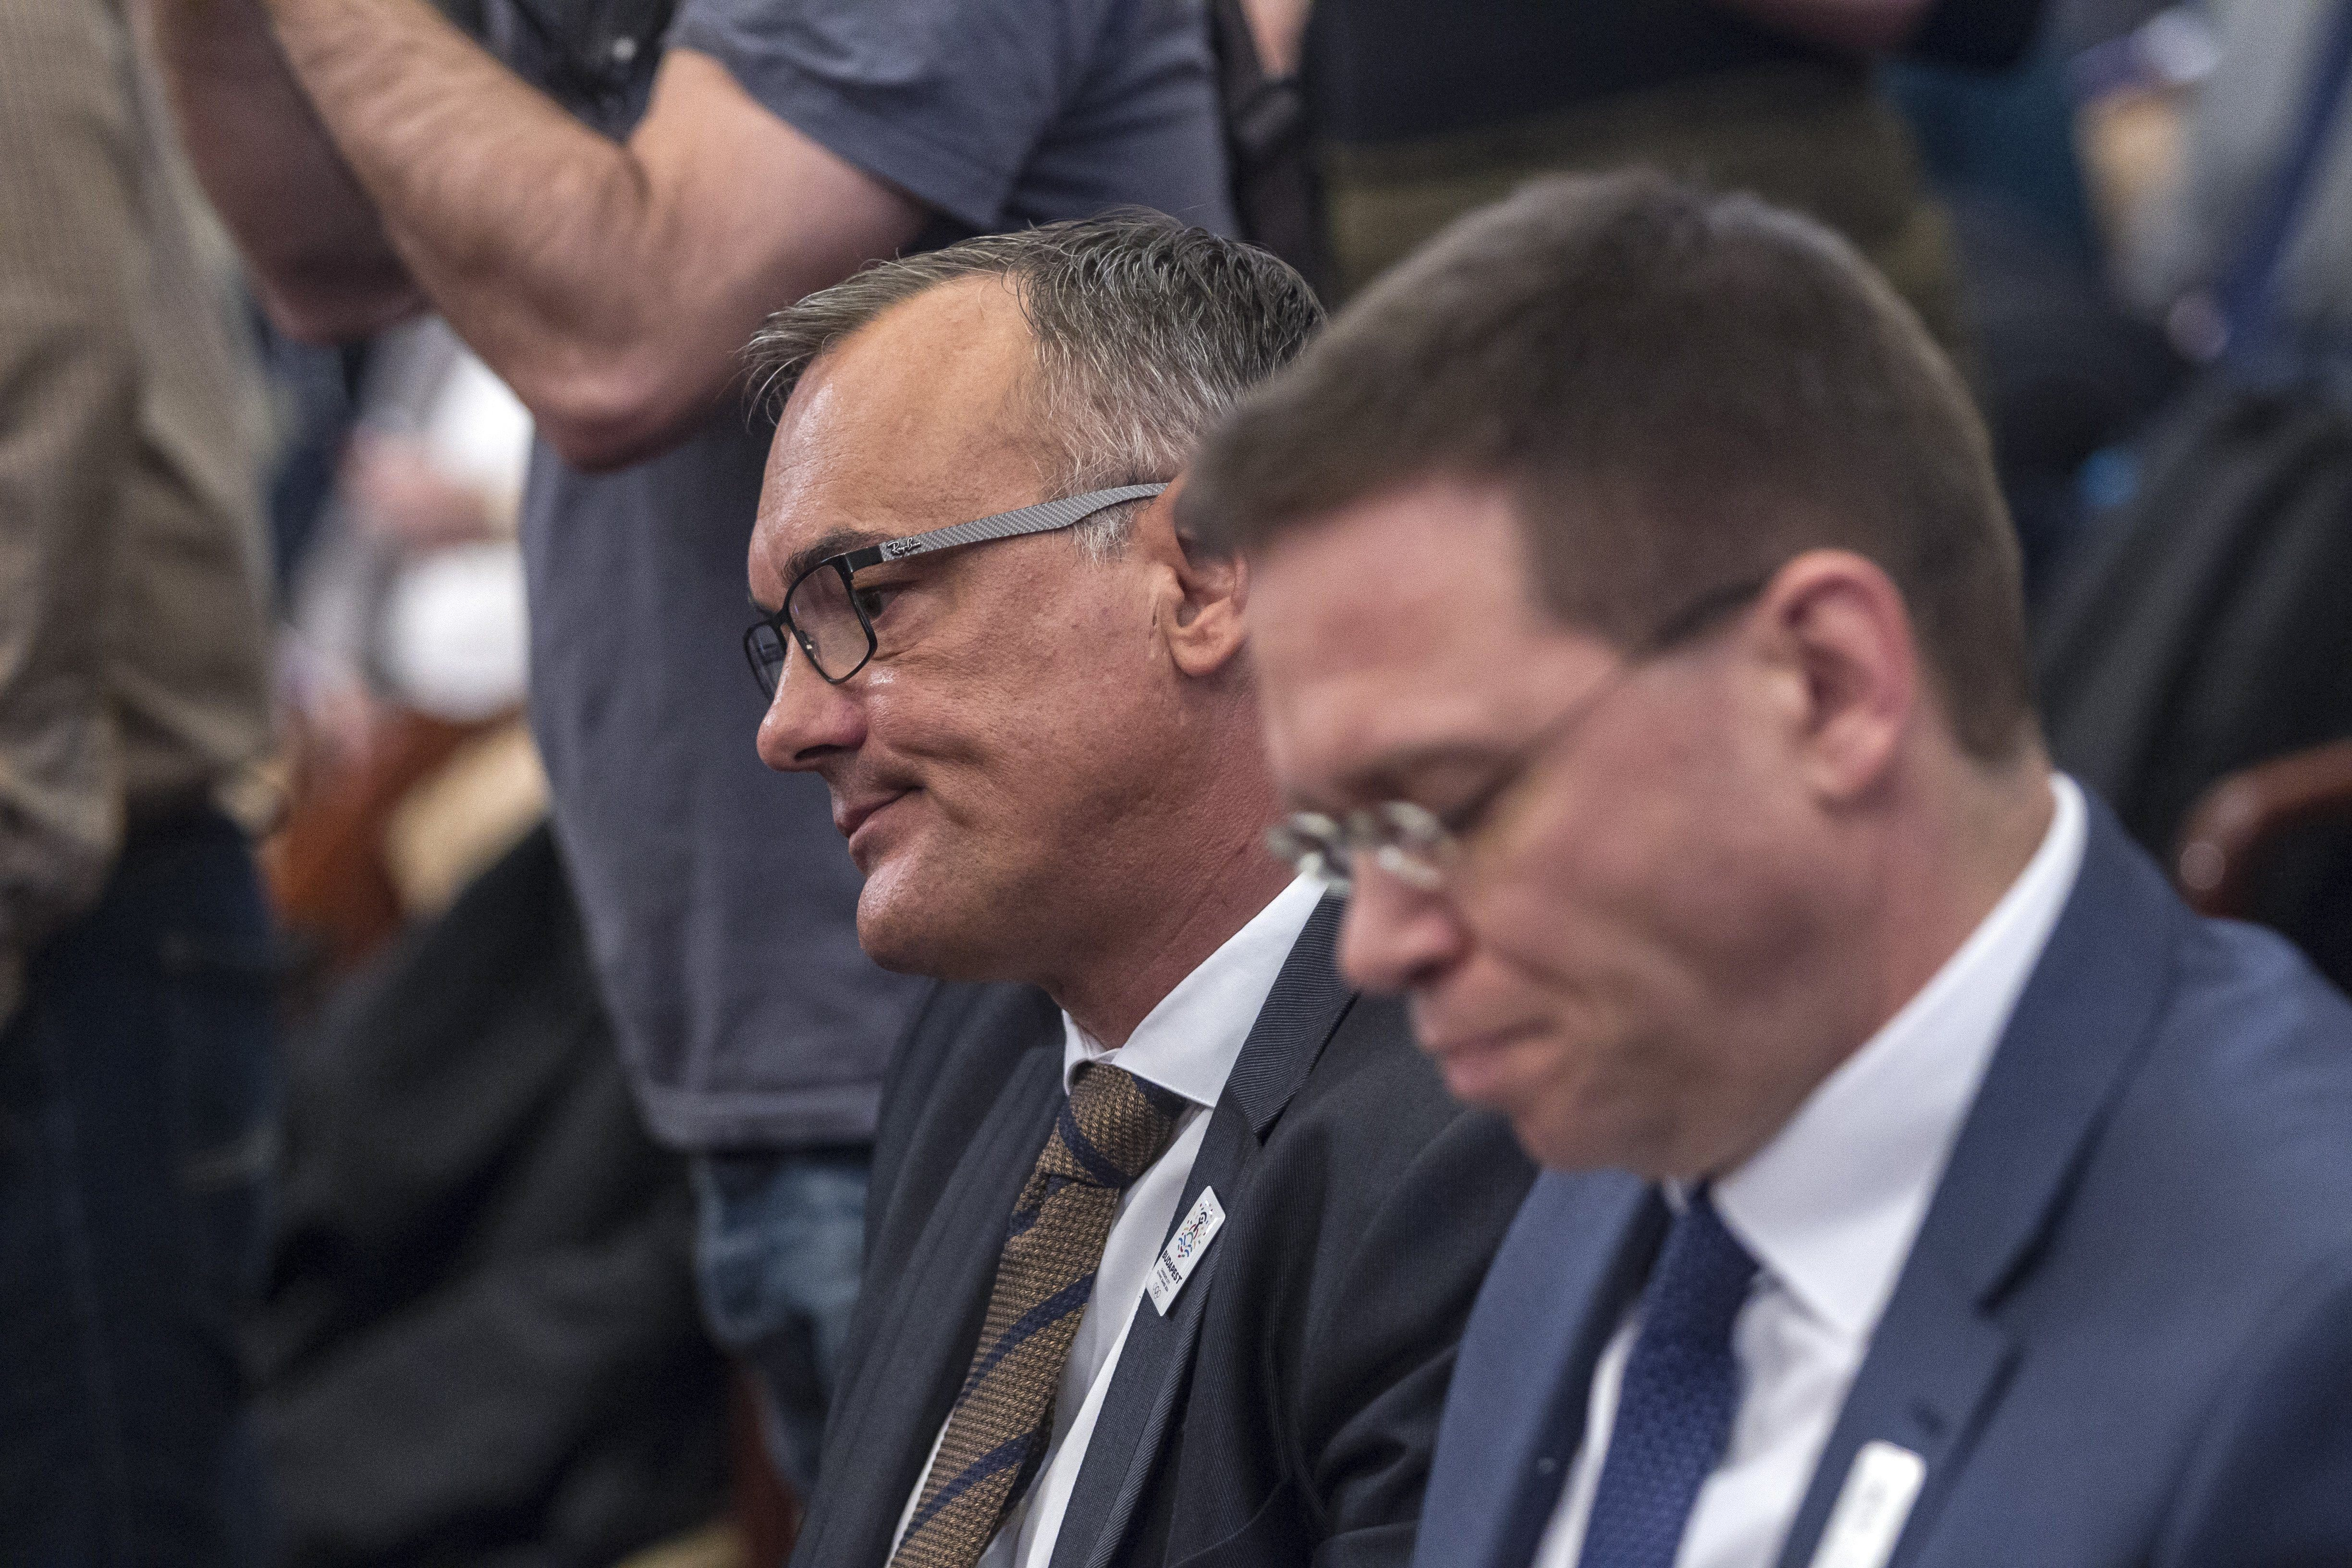 President of the Hungarian Olympic Committee Zsolt Borkai, left, and Head of the bid of Budapest for hosting the 2024 Summer Olympic Games Balazs Furjes attend a session of the General Assembly of the City of Budapest in the town hall in Budapest, Hungary